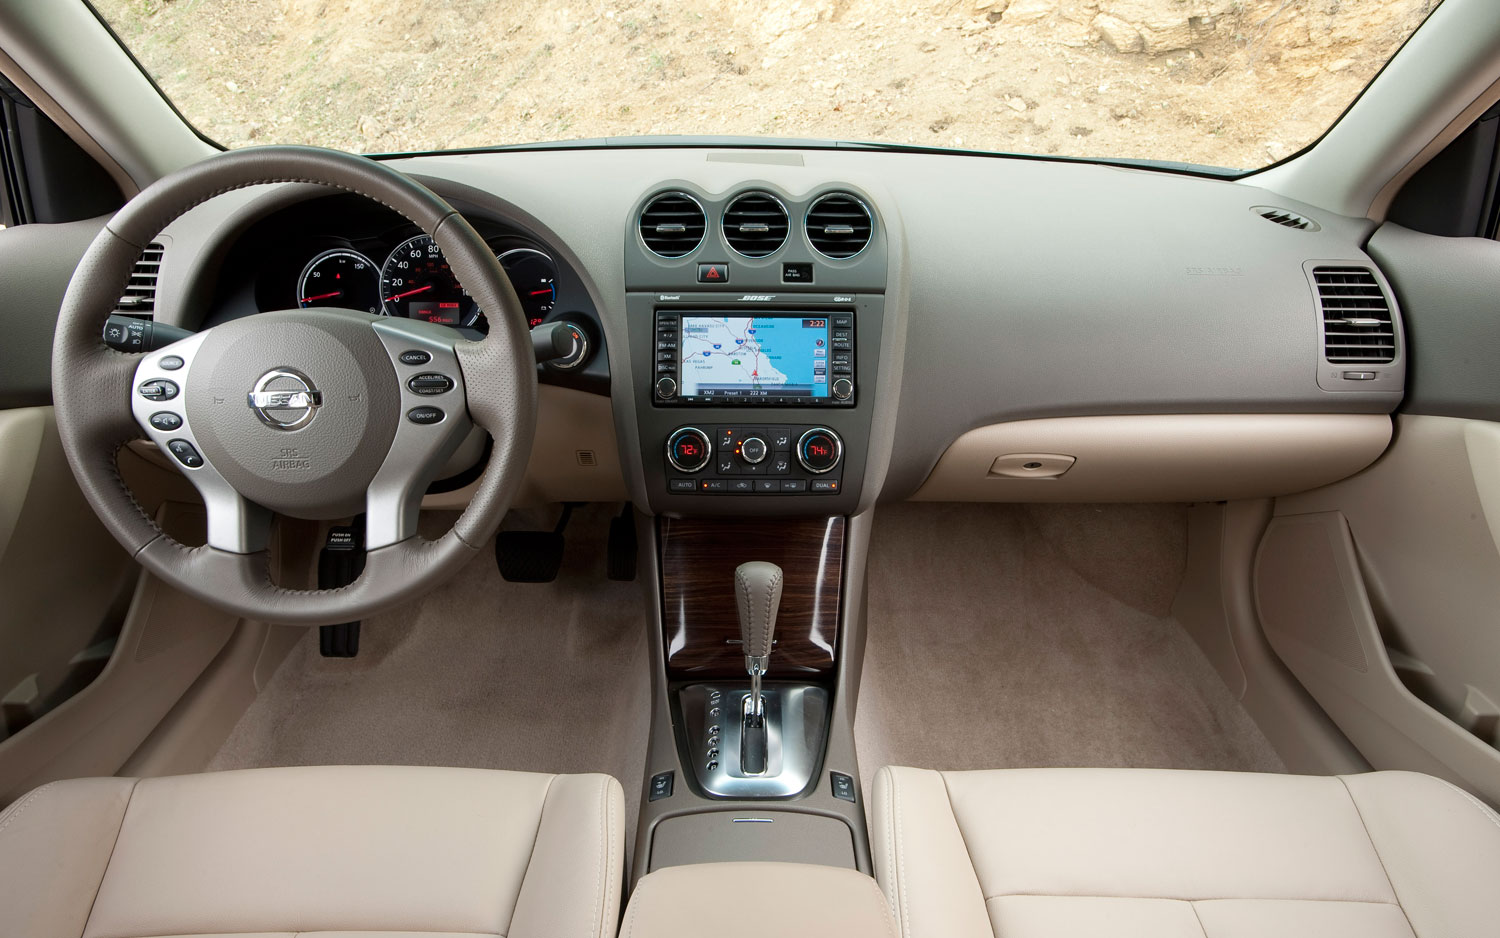 Report nissan adapting hybrid system for front drive cars like altima jake holmes vanachro Images